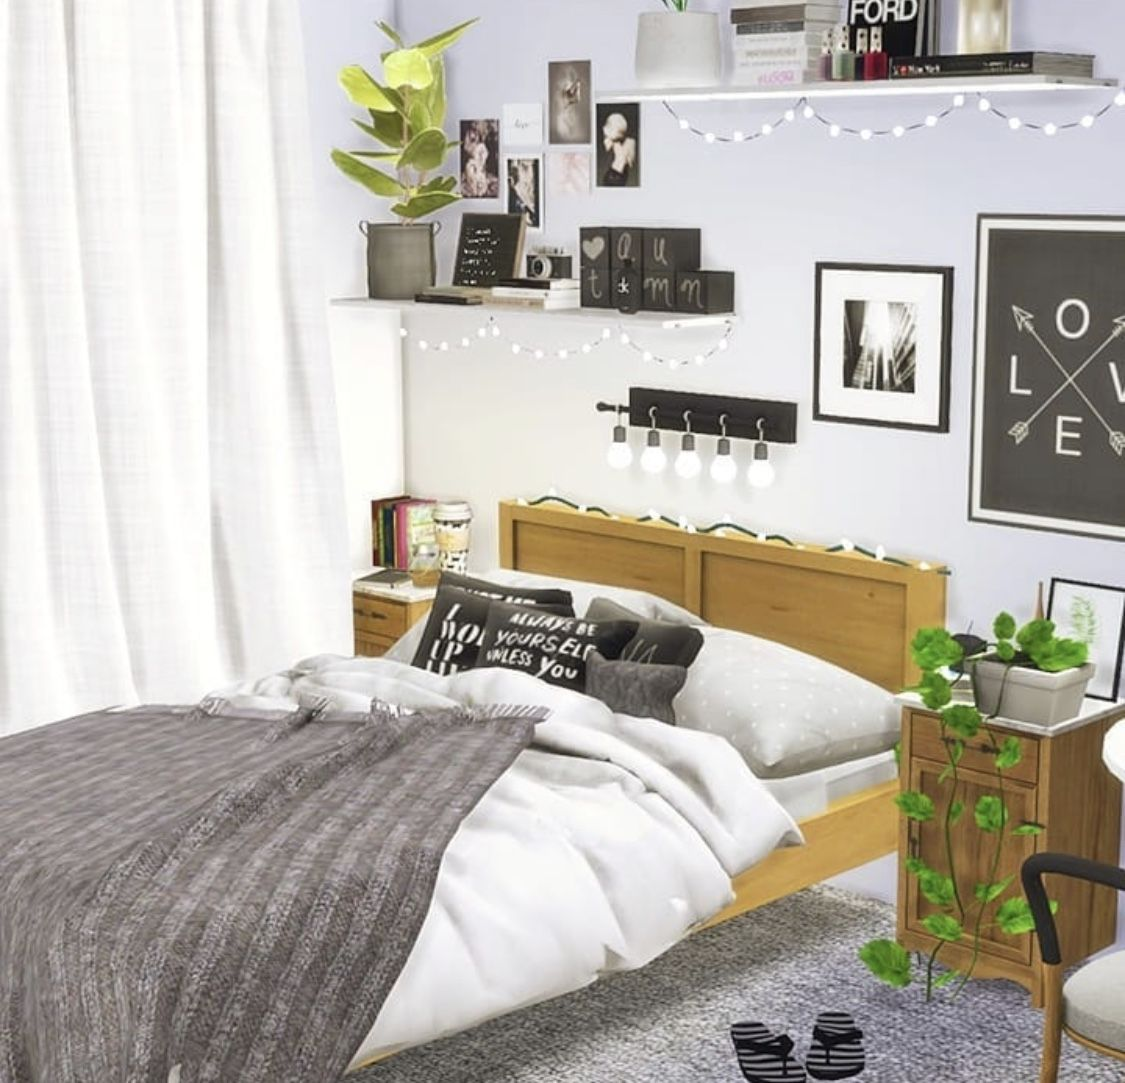 Pin by Ⓓⓐⓢⓘⓐ Ⓐⓡⓜⓞⓝⓘ on Sims 4 cc | Home decor, Home, Decor